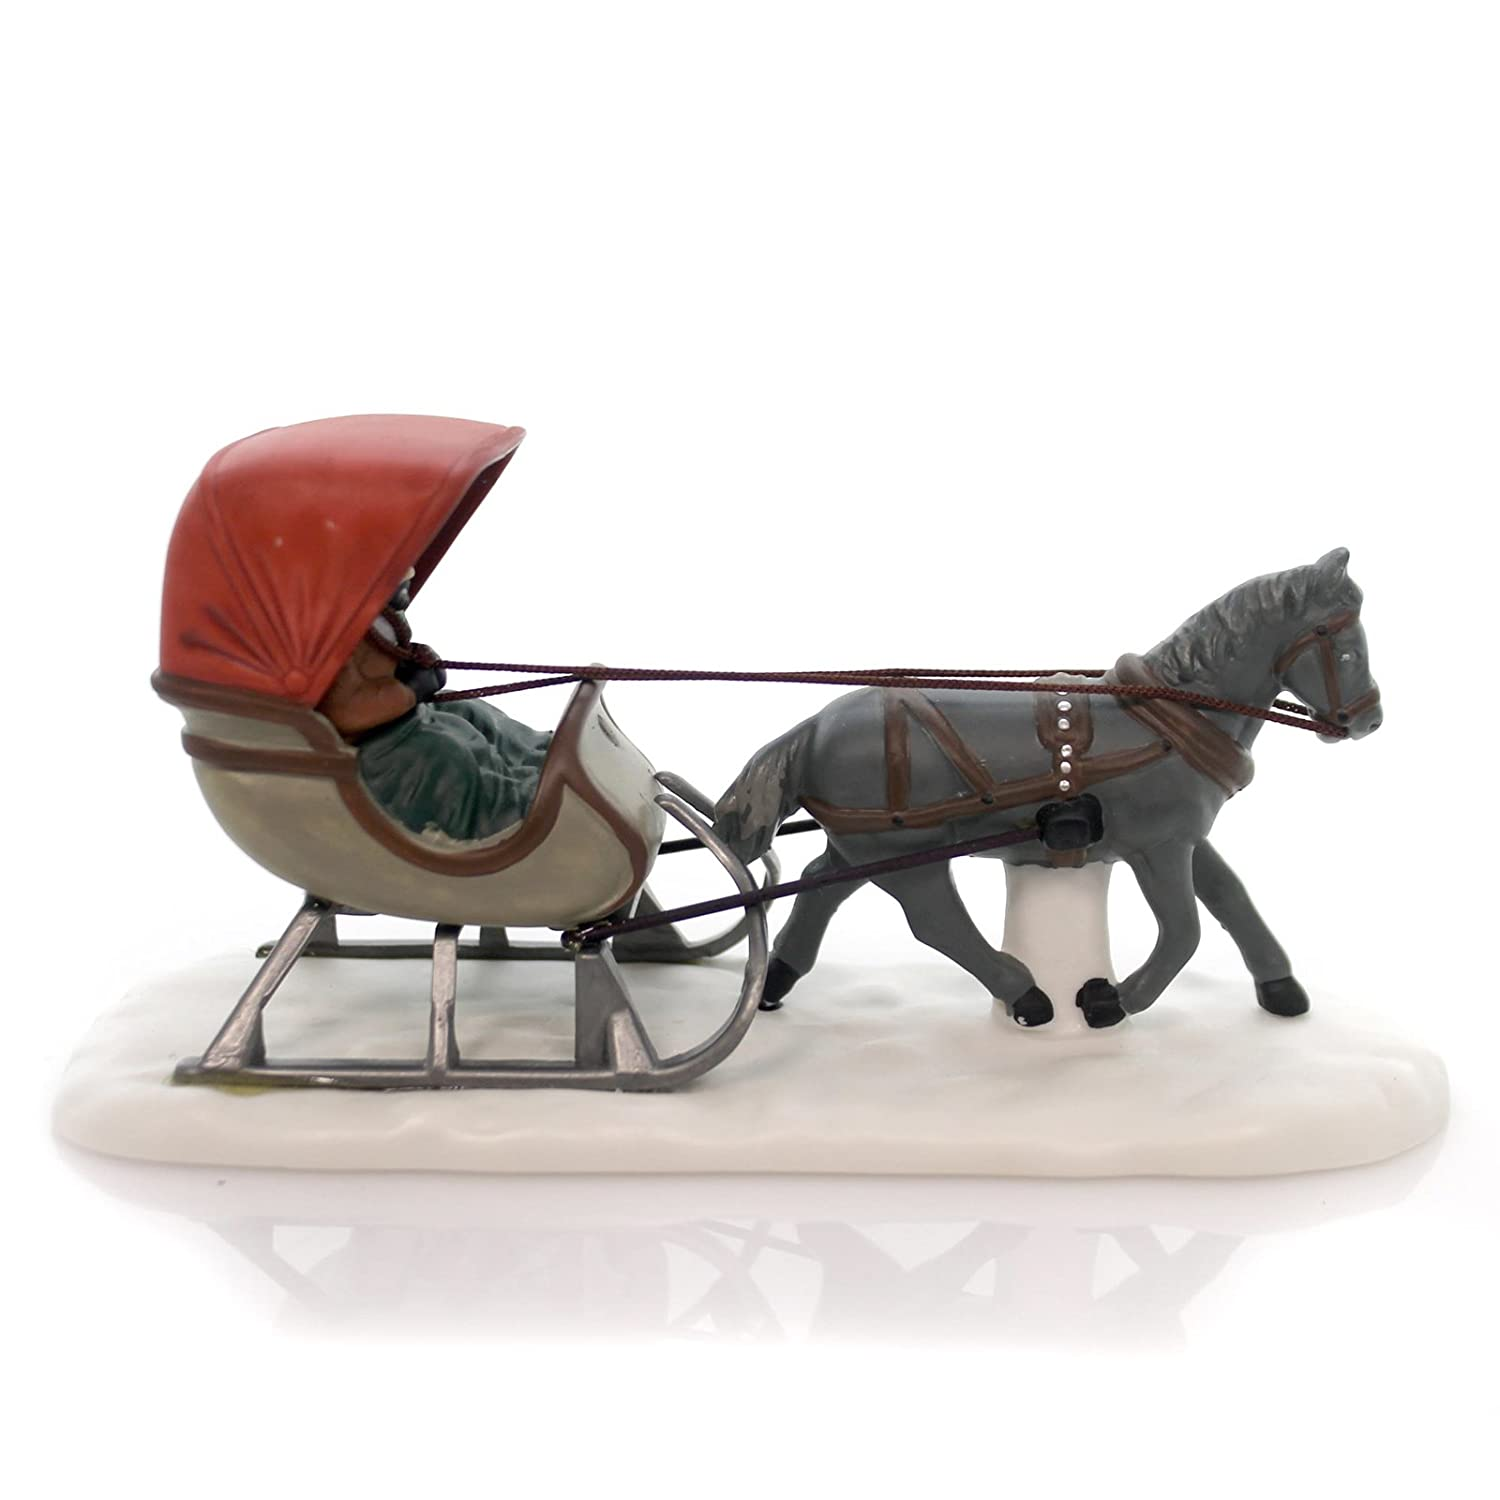 Amazoncom Department 56 Accessory One Horse Open Sleigh New